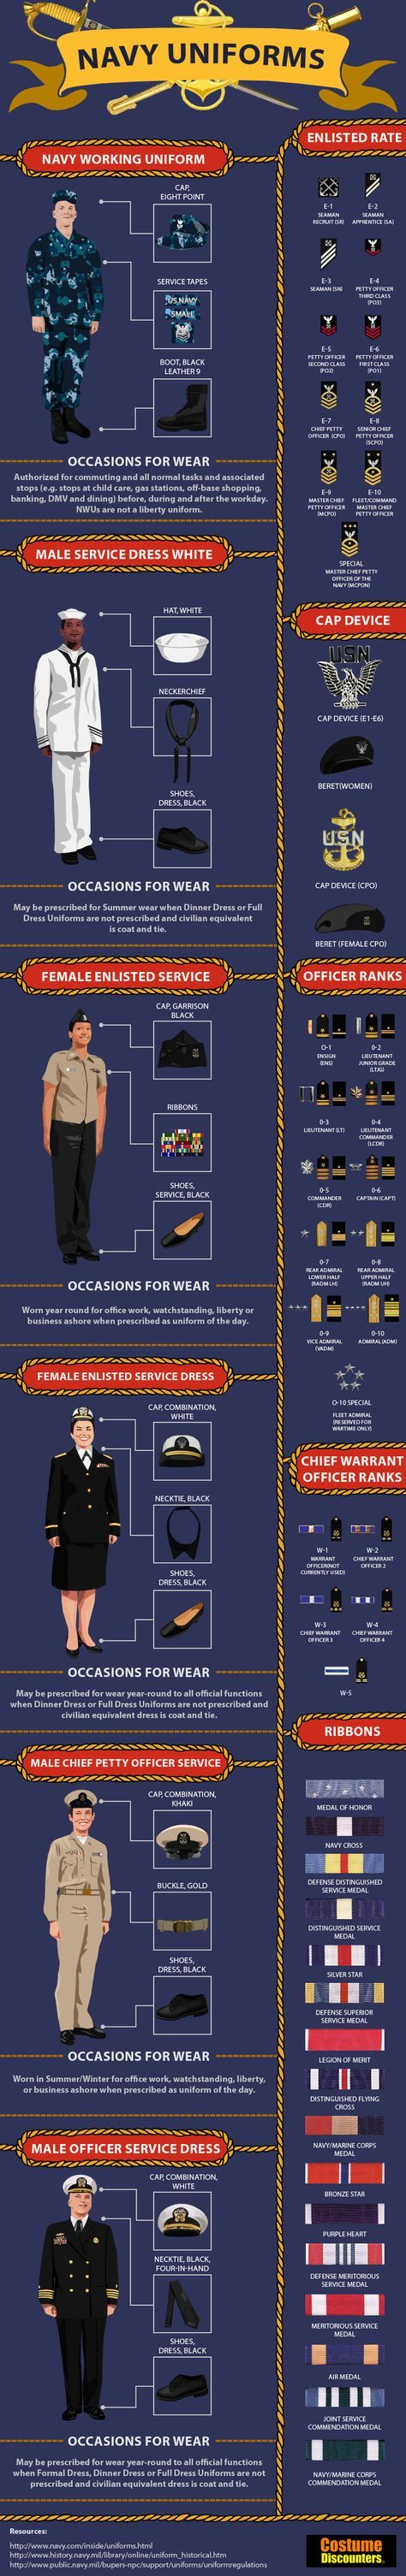 US Navy Uniform Infographic